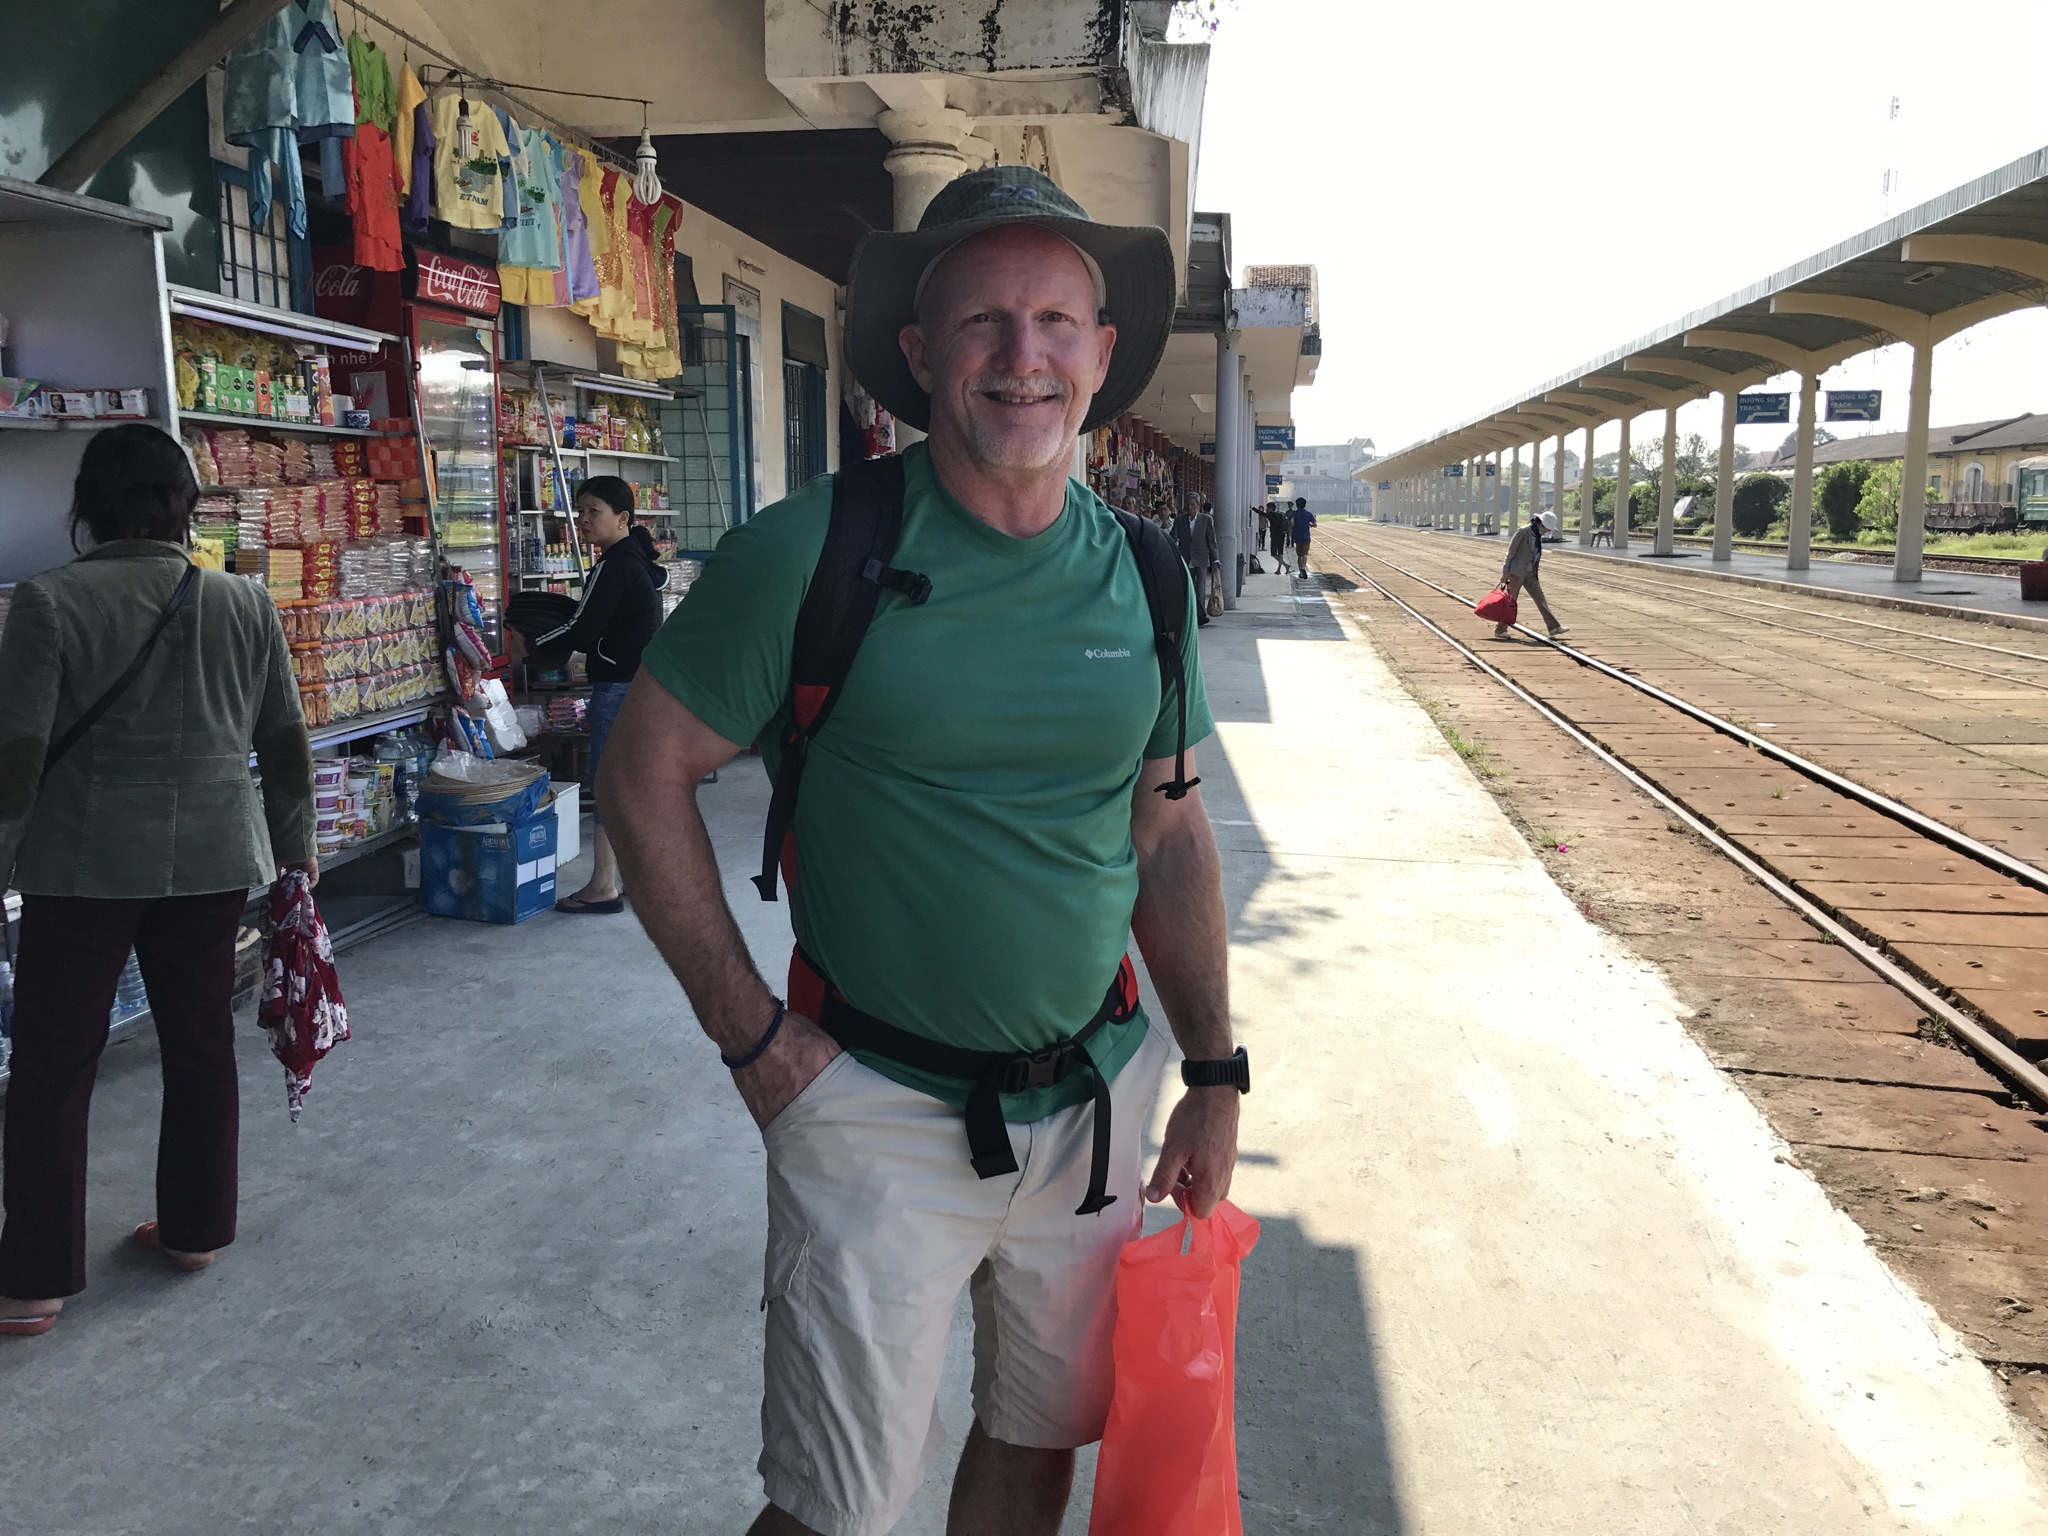 Barry Waiting on The Train in Vietnam